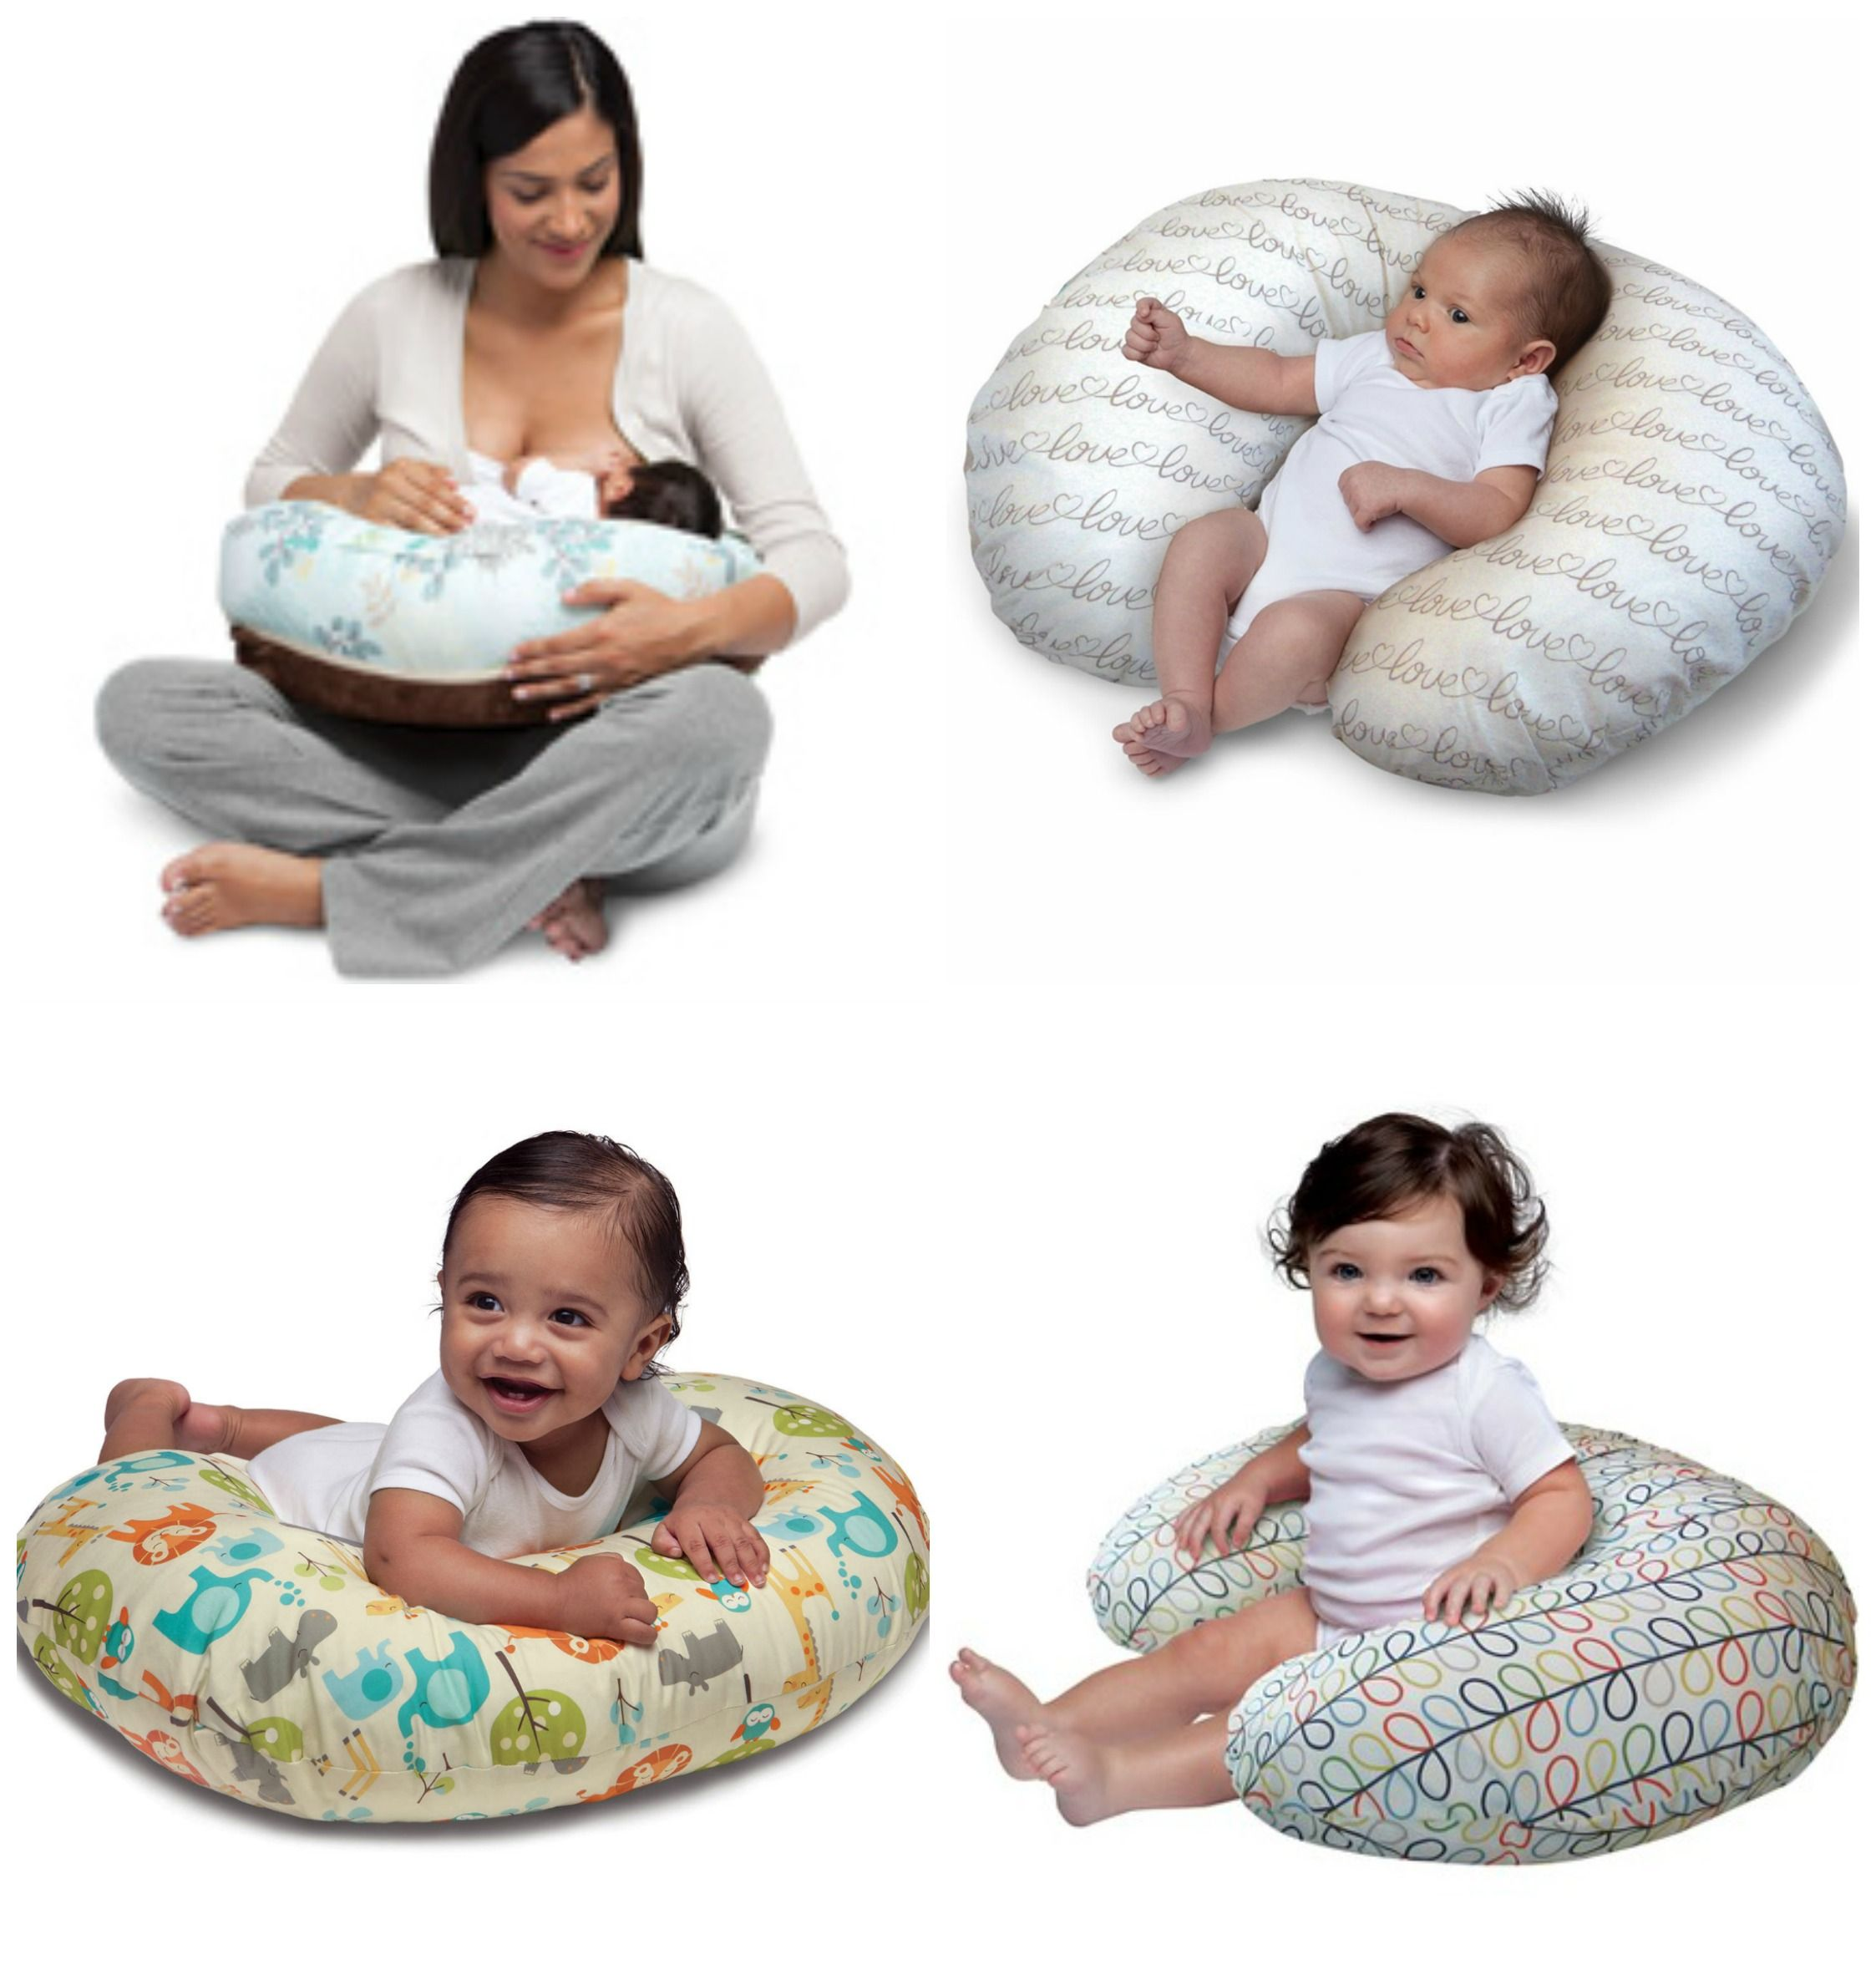 mom that boppy horseshoe brest out natural an leacho shoots has leachco similar but pillow best is compared extra alpha pillows stuffed the friend shape nursing it vs reviewed parenting my and top review baby appendage boost of to